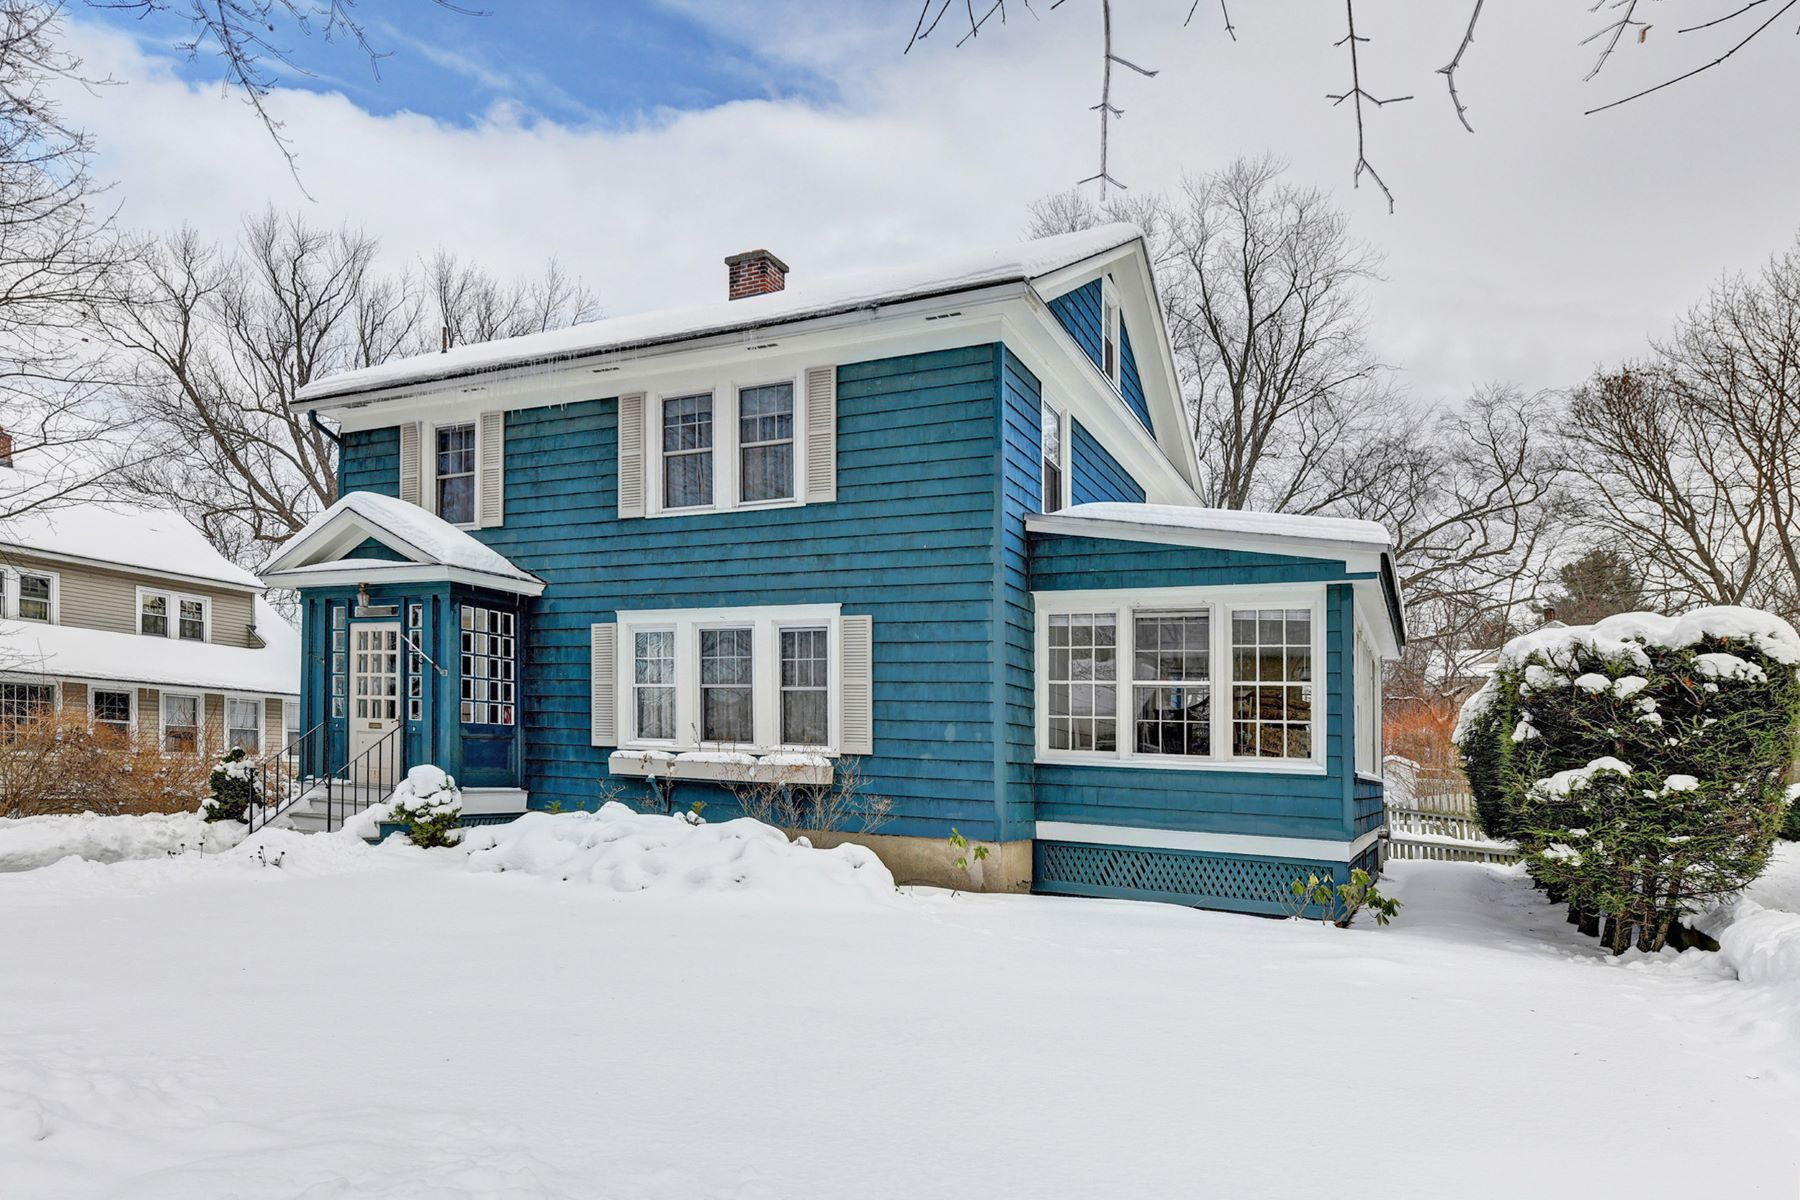 Single Family Homes for Sale at Southeast 4 Bedroom in Time for the Holidays 117 Pollock Ave Pittsfield, Massachusetts 01201 United States